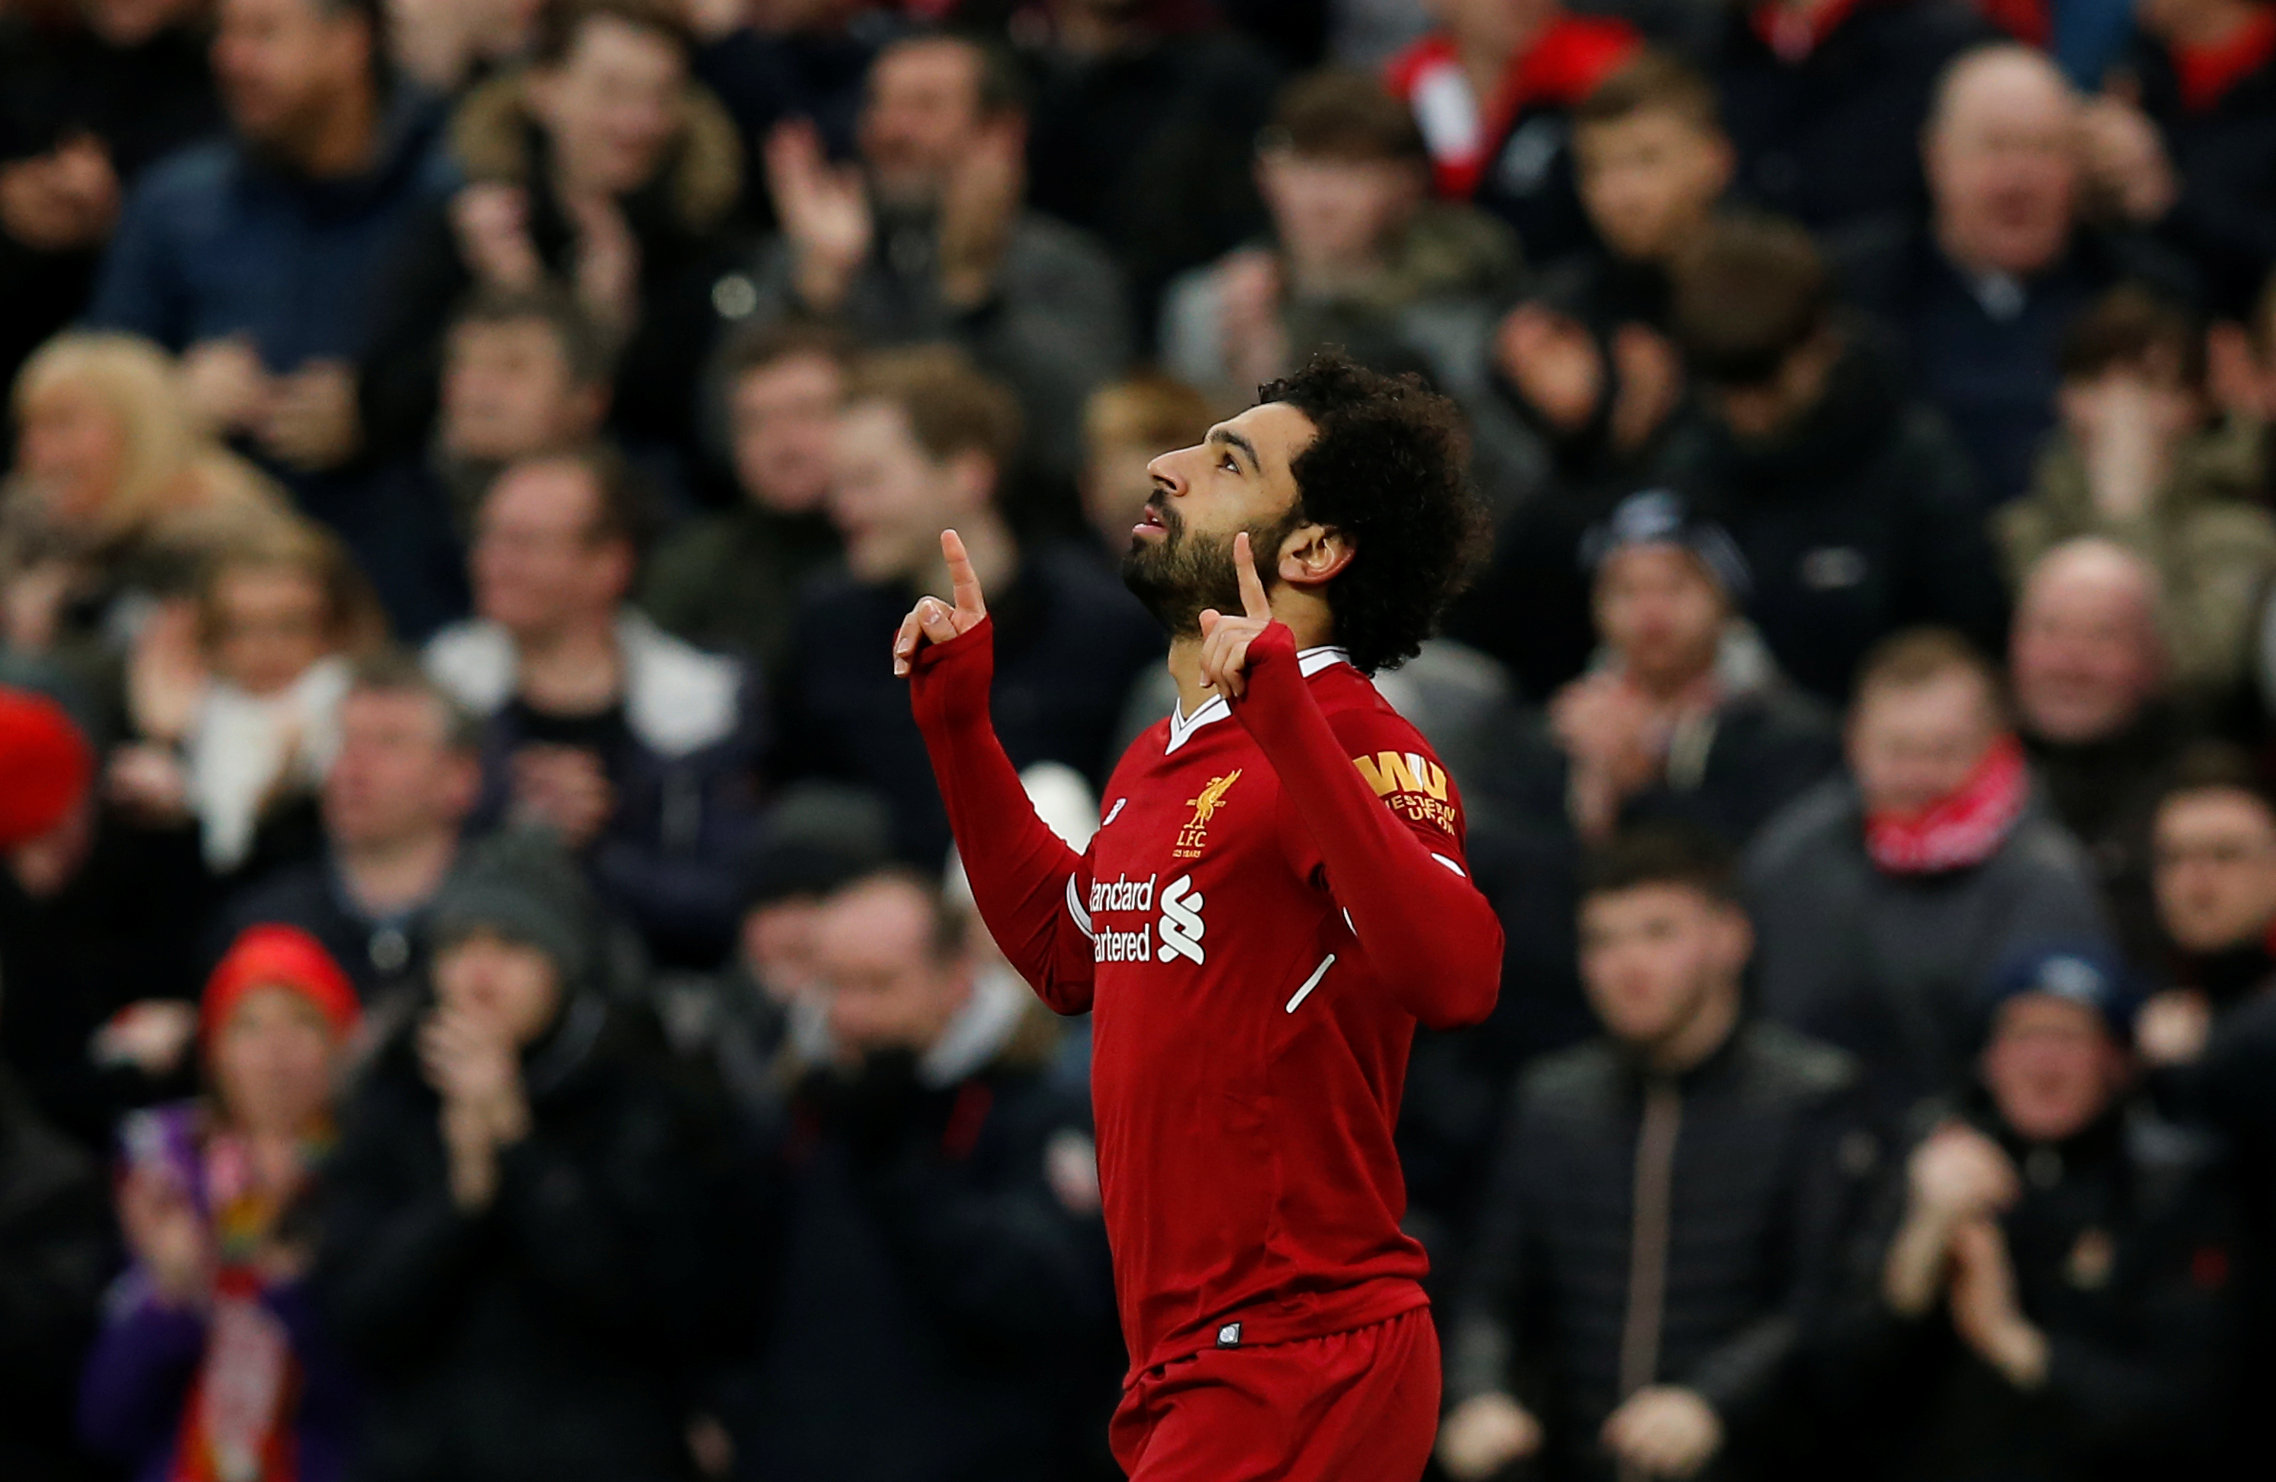 'Klopp to thank for Salah's brilliant form' says Roma legend